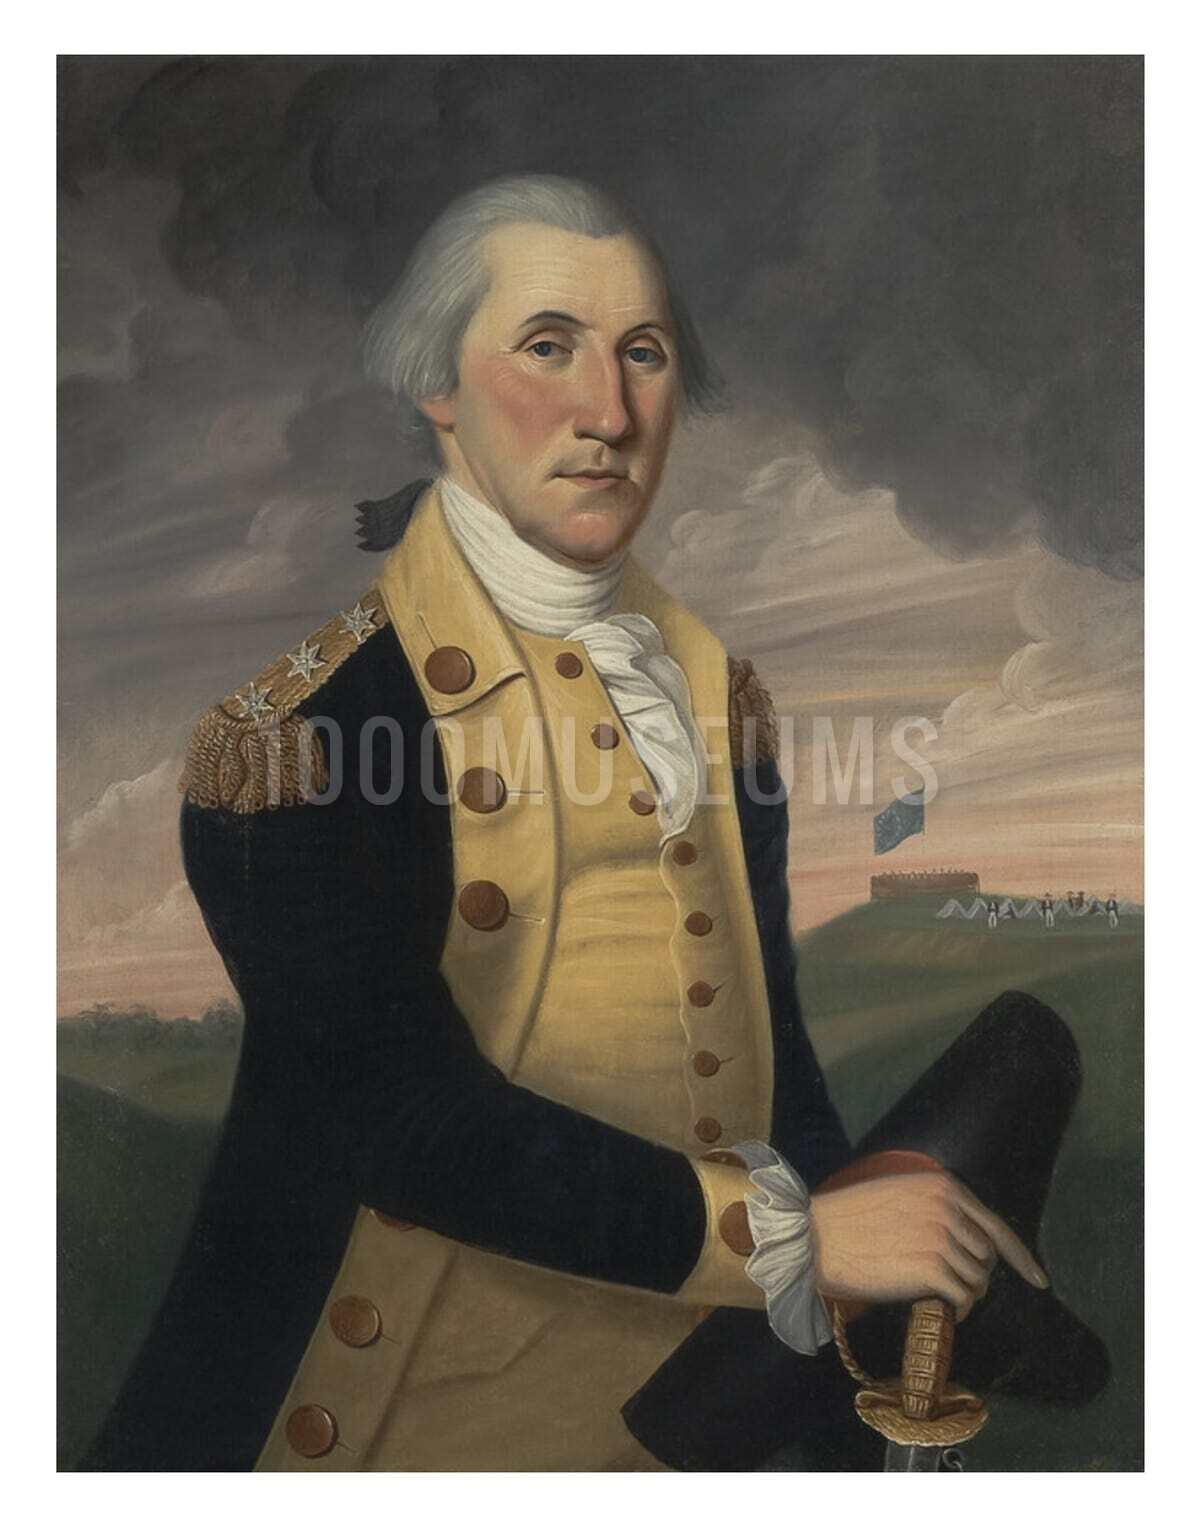 New 8x10 Photo George Washington 1st Commander-in-Chief of the United States